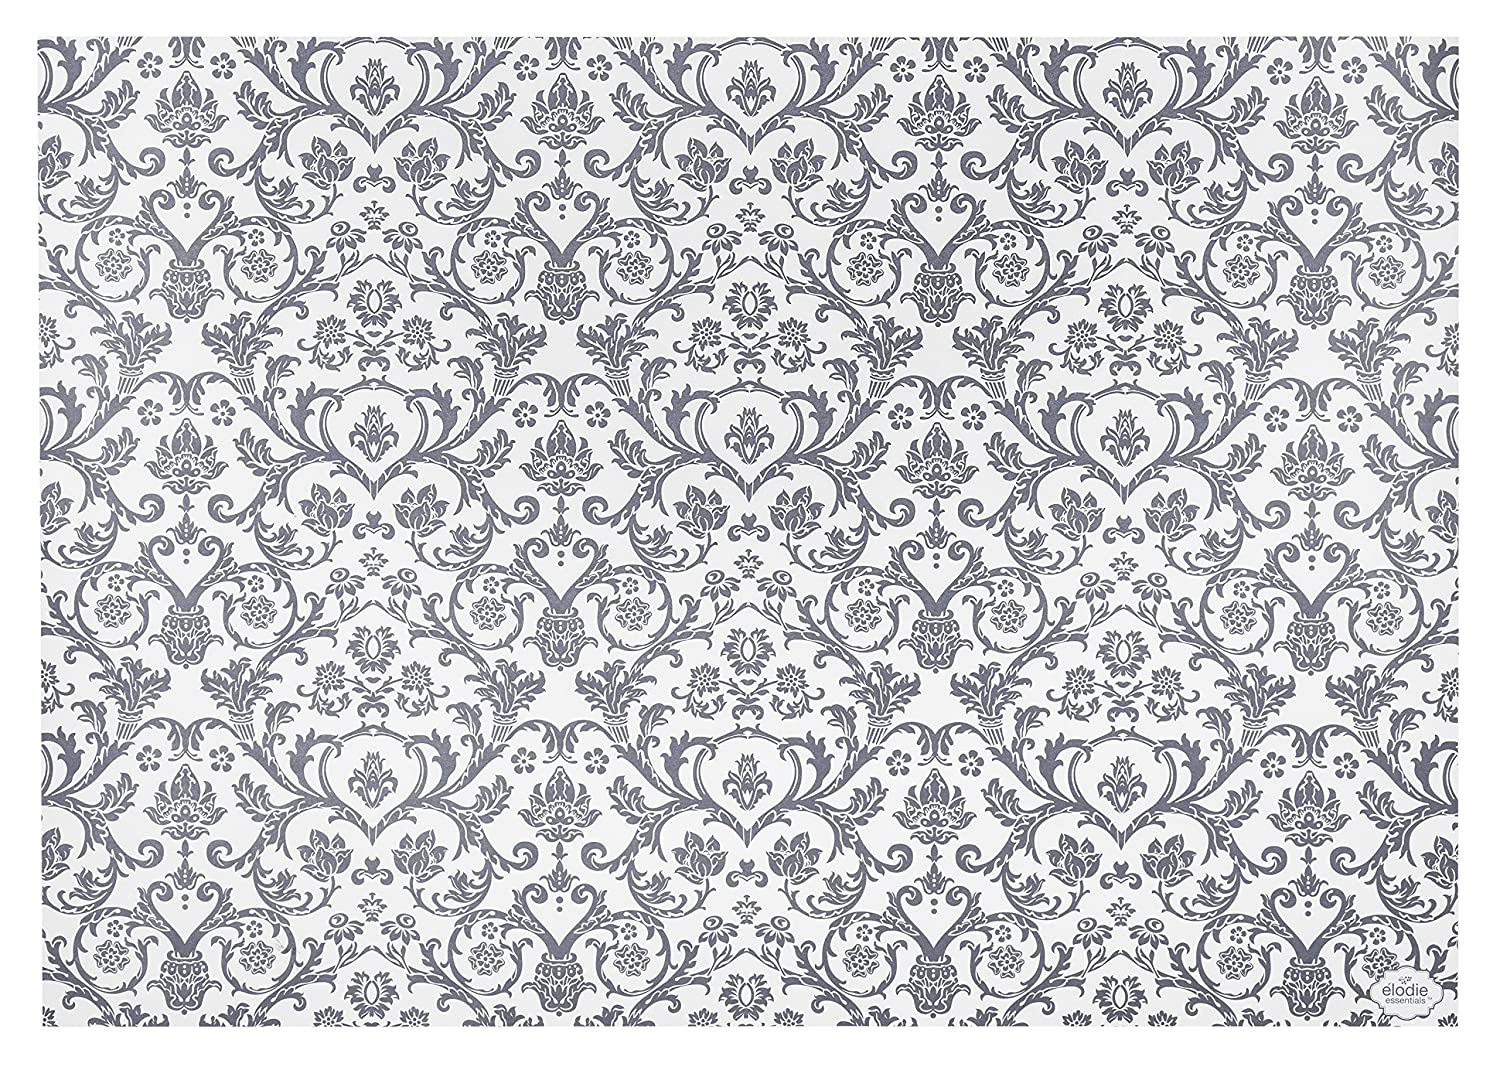 f7f6892b0 Amazon.com  Elodie Essentials English Lavender Scented Drawer Liners -  Royal Damask  Home   Kitchen